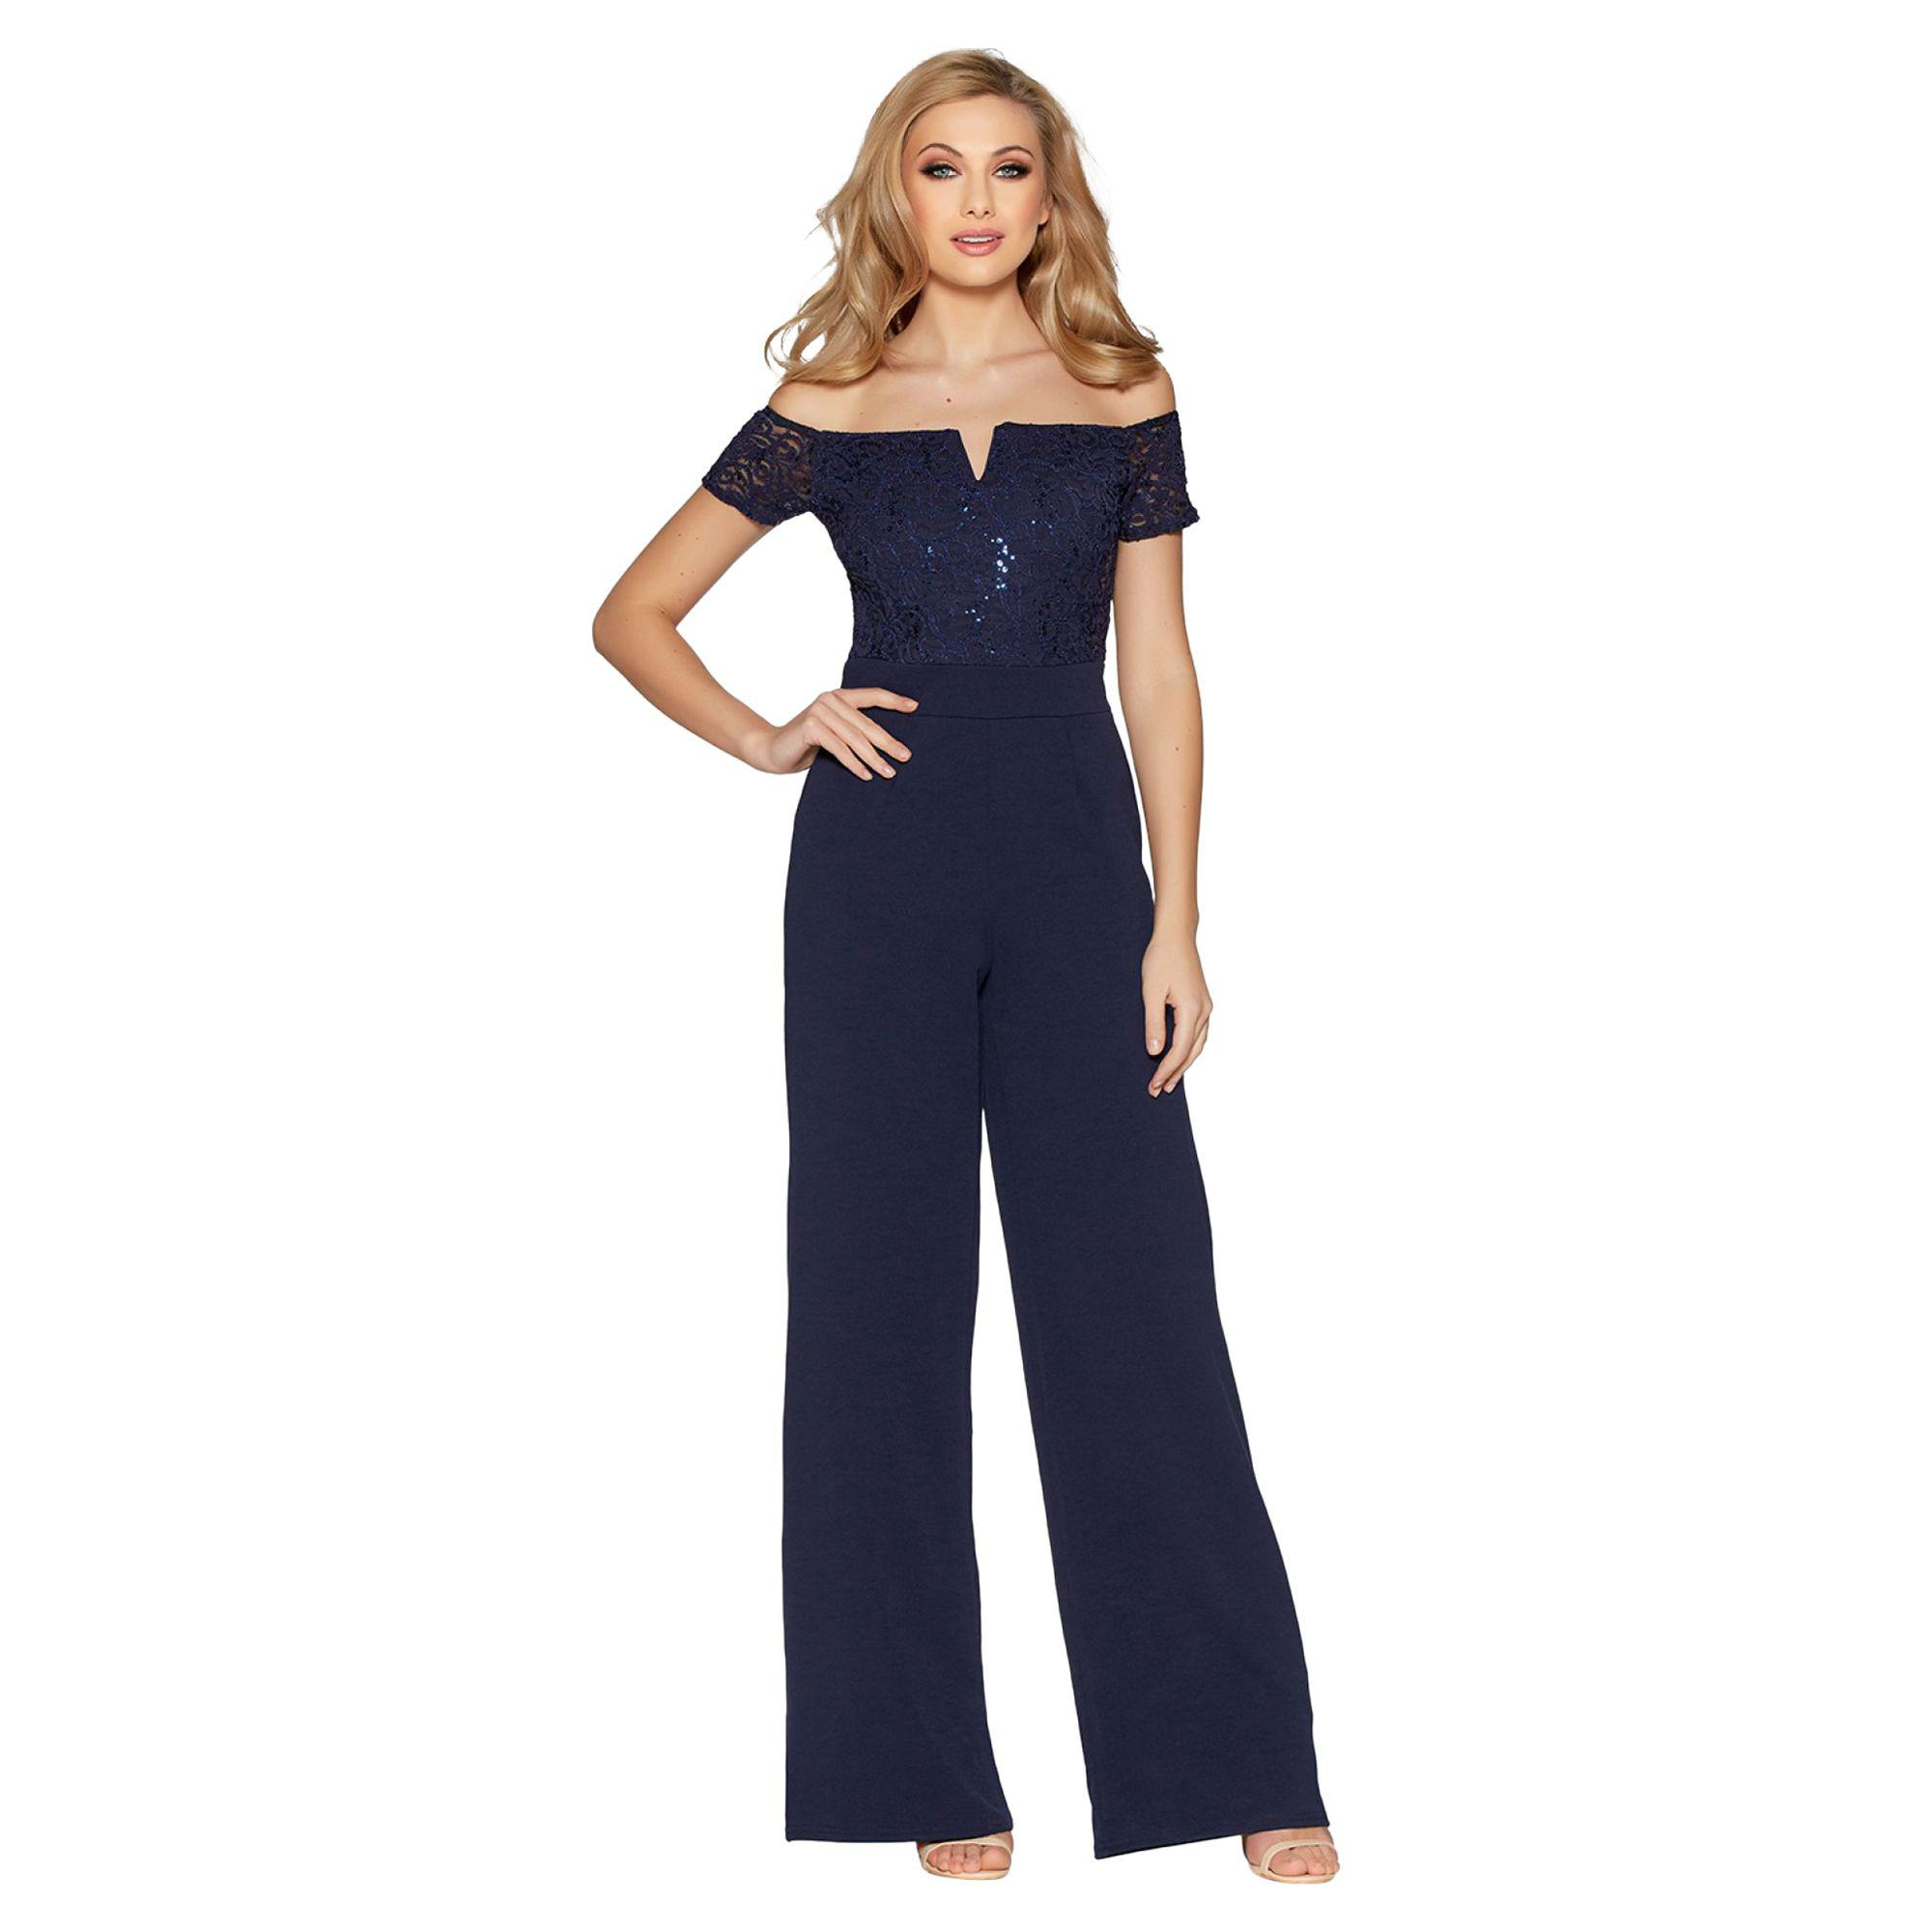 1921aa73bc1 Quiz Navy Sequin Lace Bardot Jumpsuit in Blue - Lyst